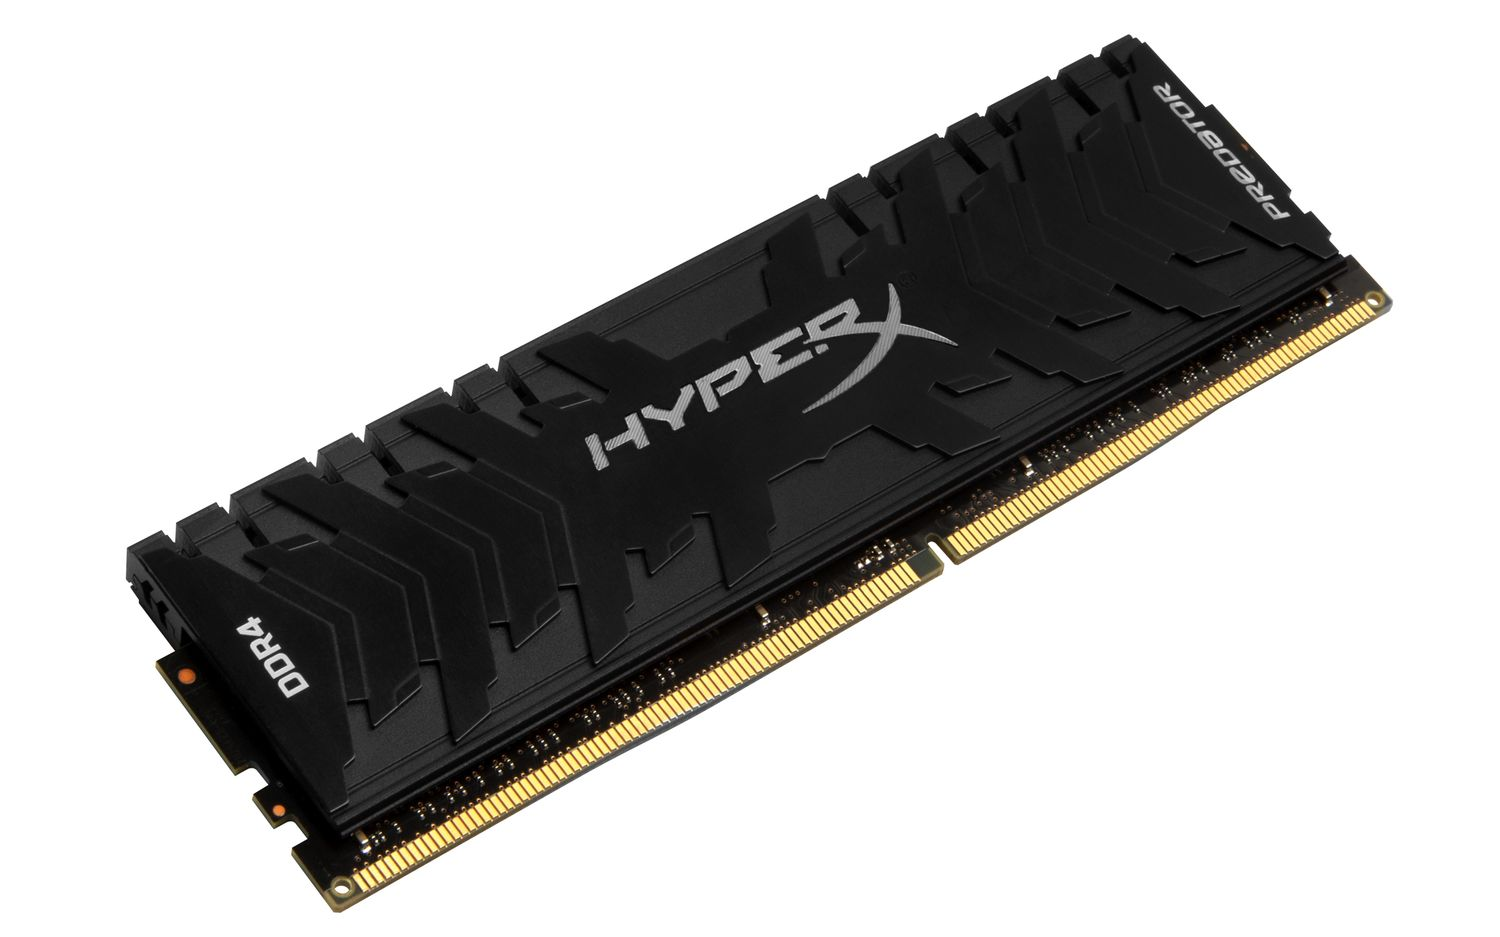 Купить Память DDR4 Kingston 8GB CL12 DIMM XMP HyperX Predator (HX424C12PB3/8)